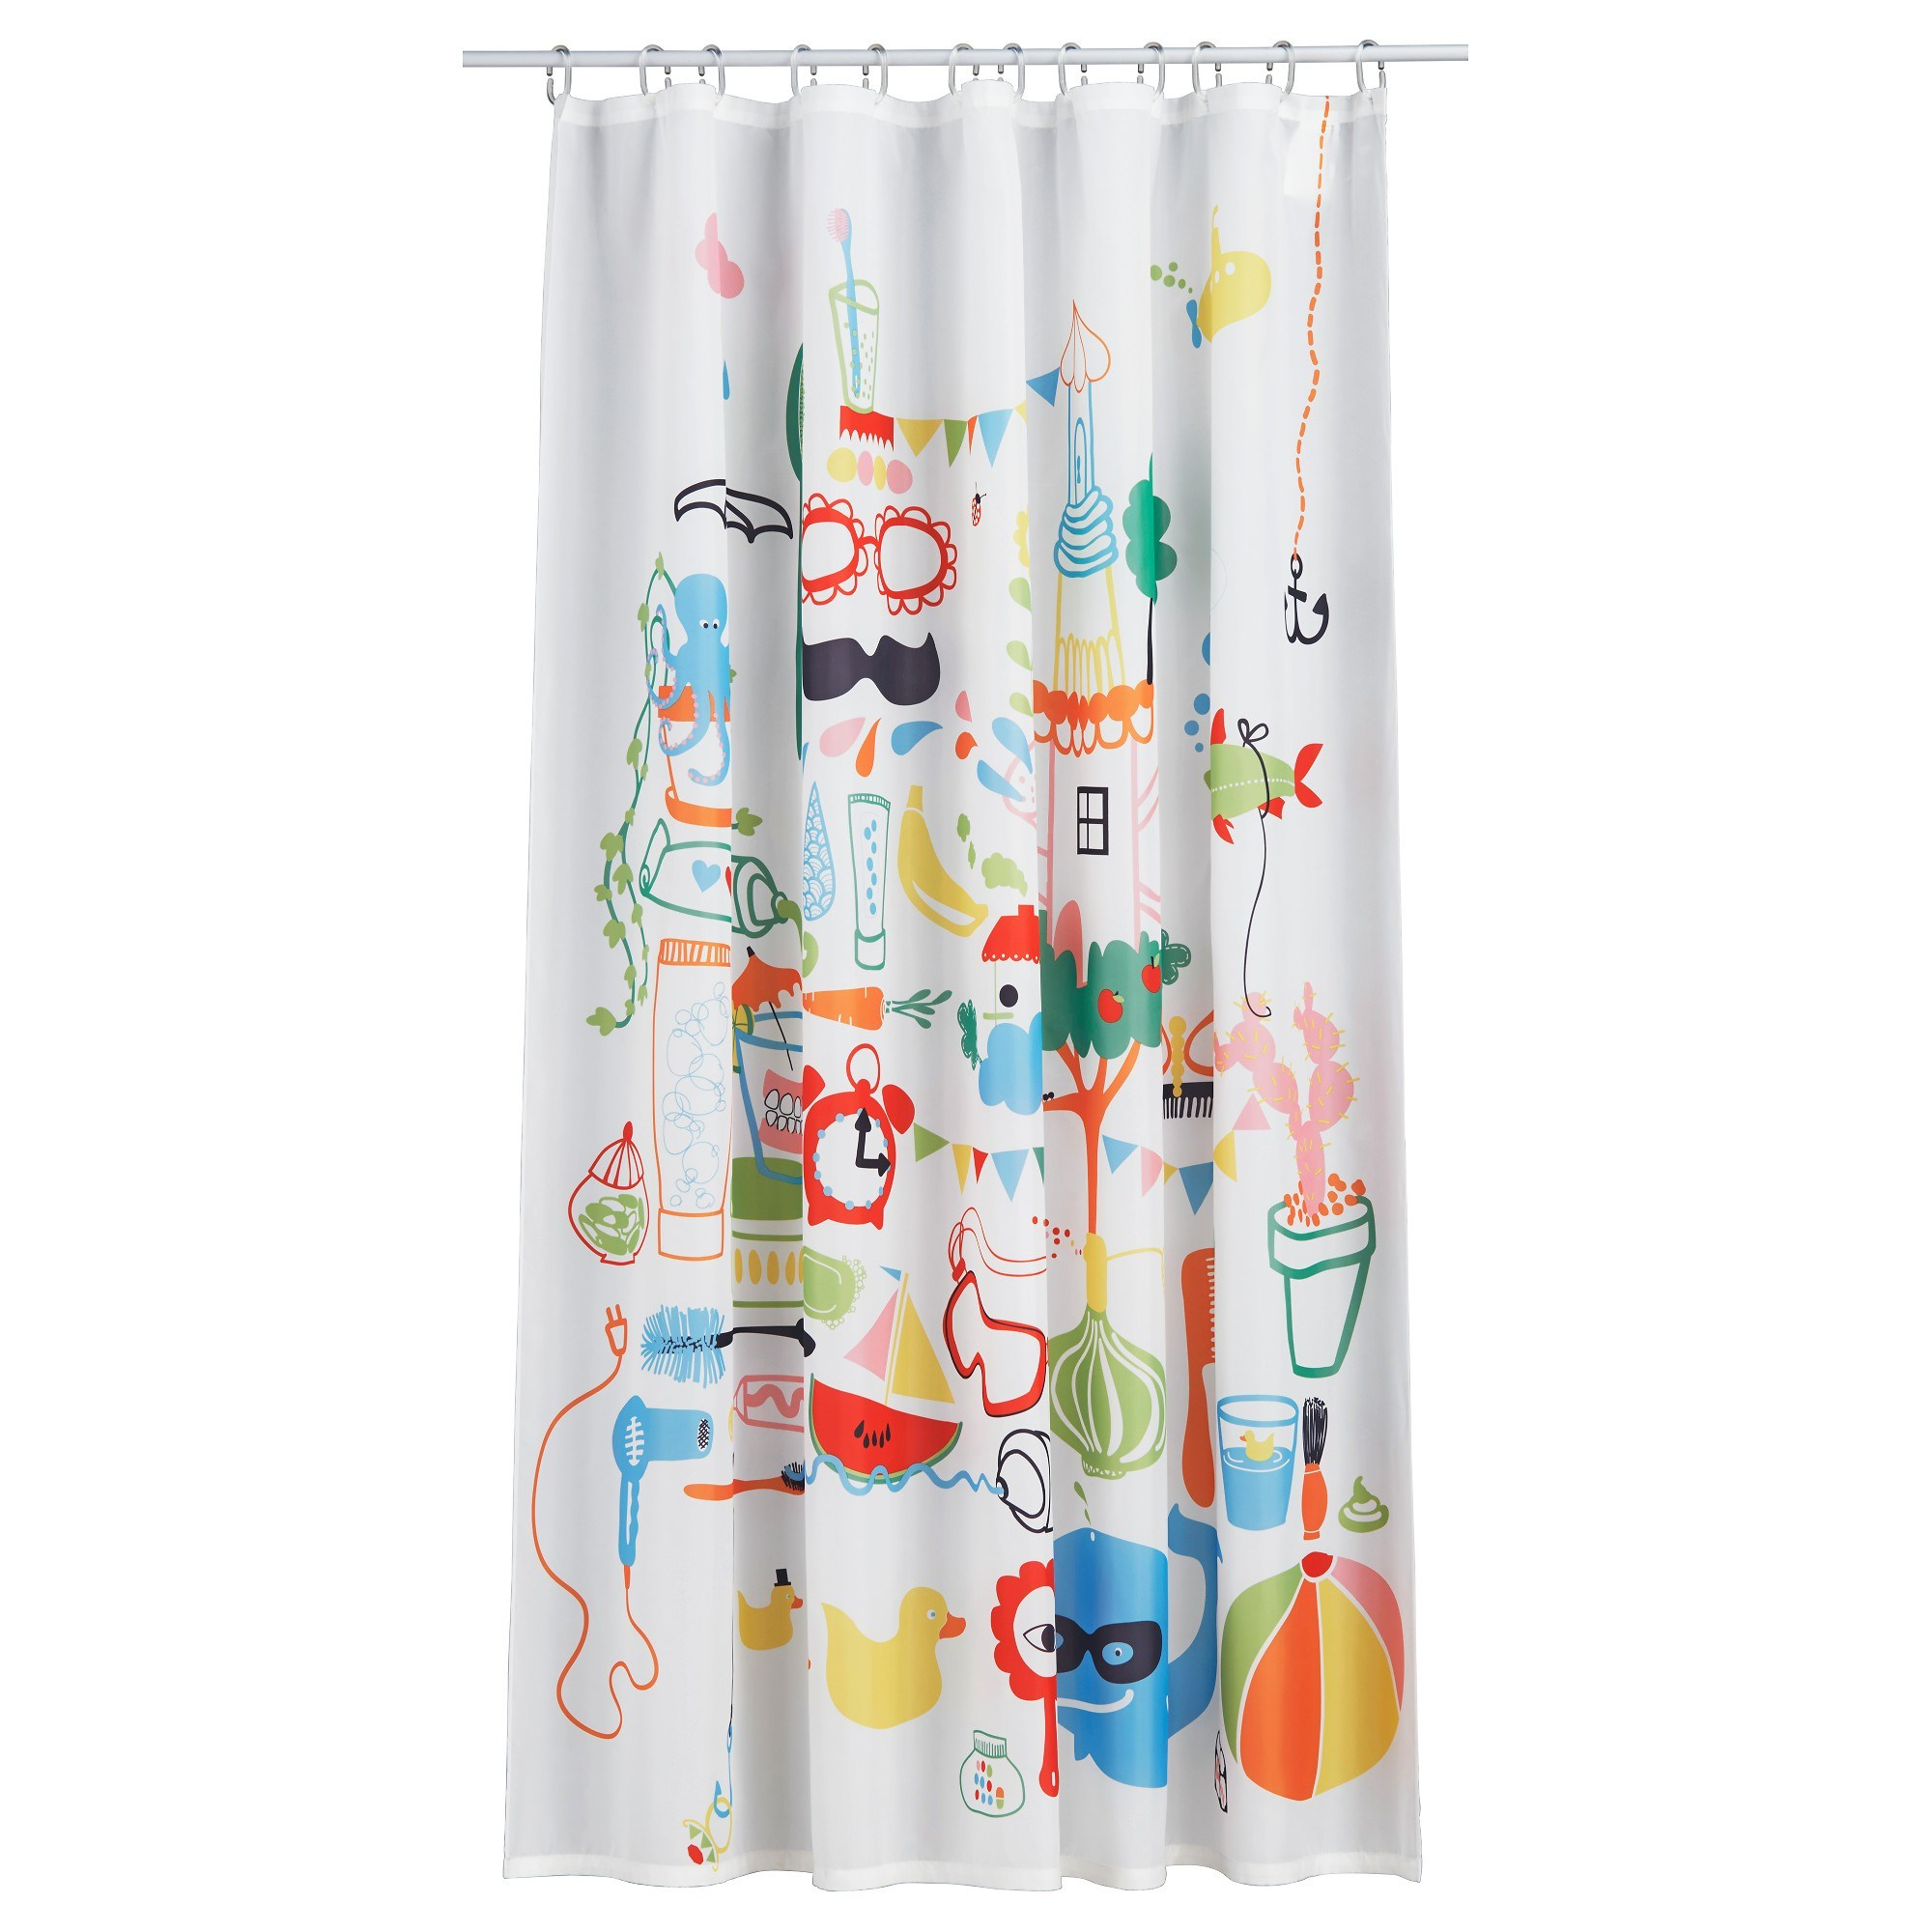 84 Shower Curtain Fabric | Ikea Shower Curtain Hooks | Ikea Shower Curtain